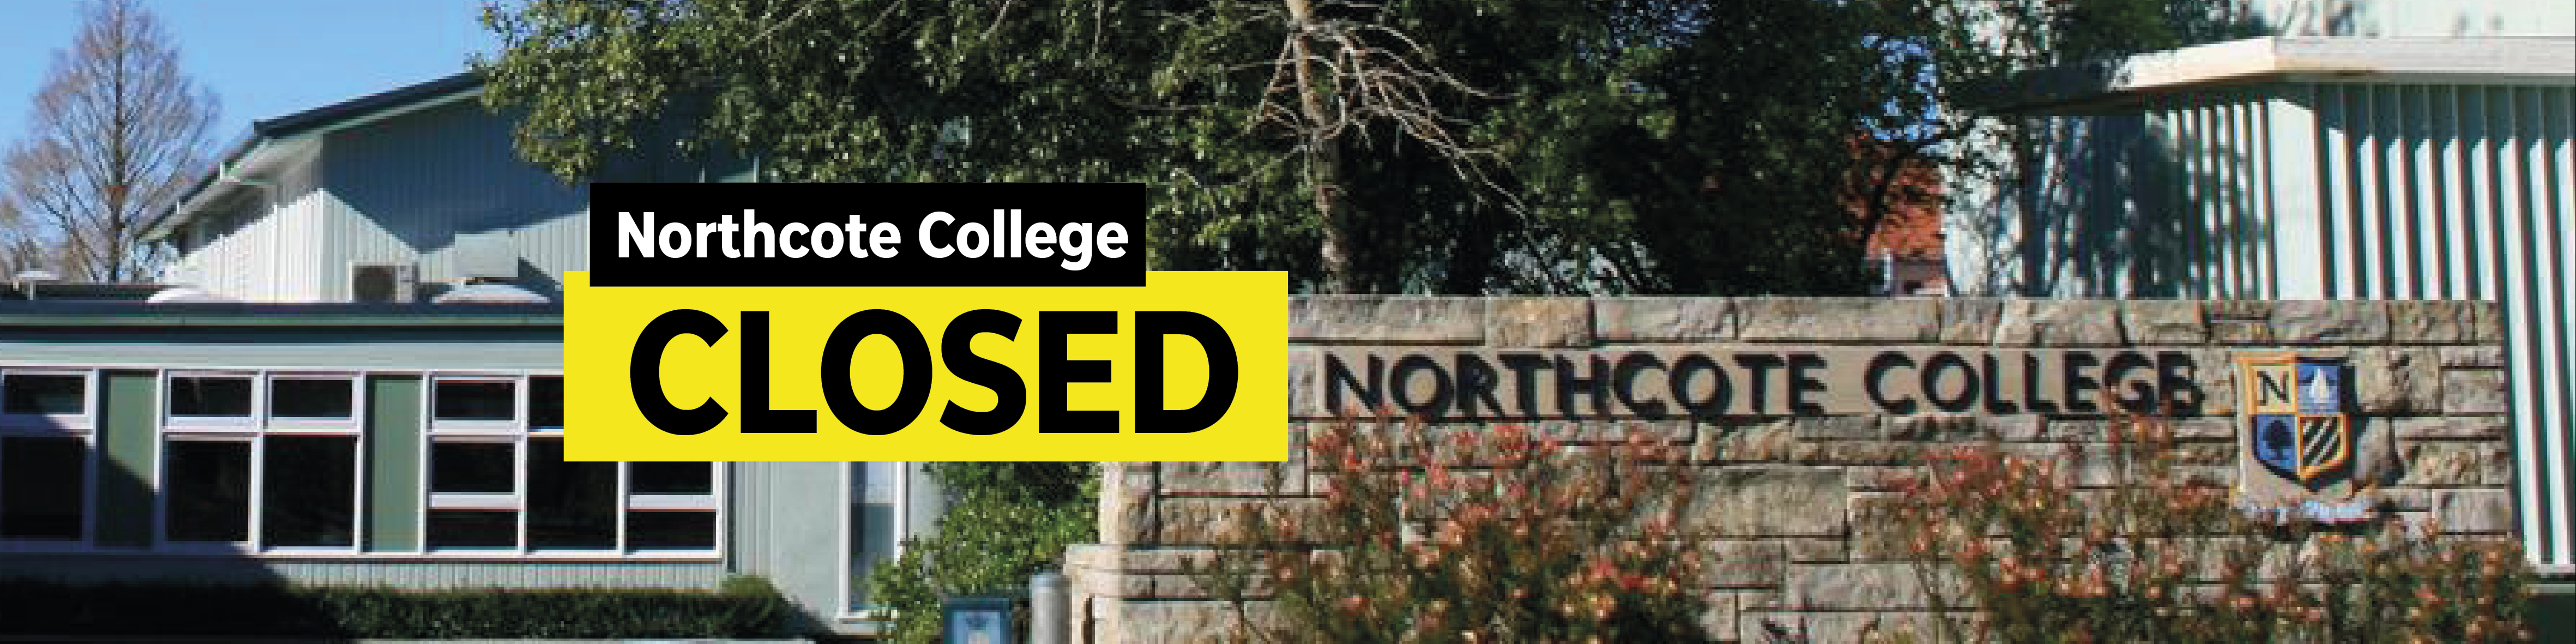 northcote college closed